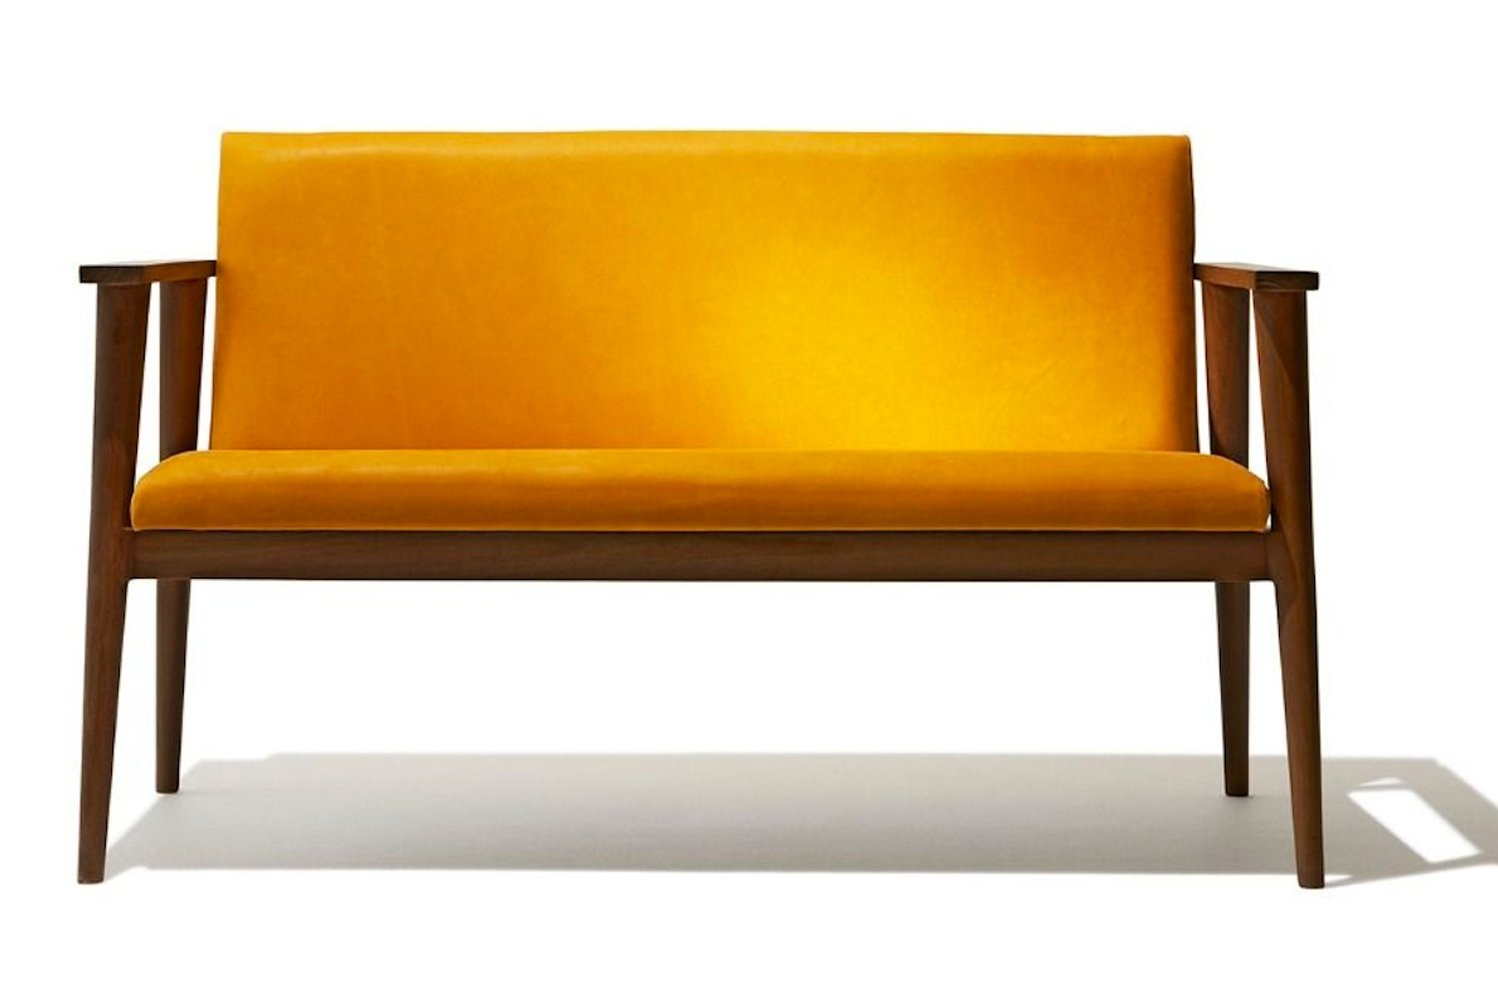 The seating is said to be inspired by classic Scandinavian furniture of the 1950s and 1960s.